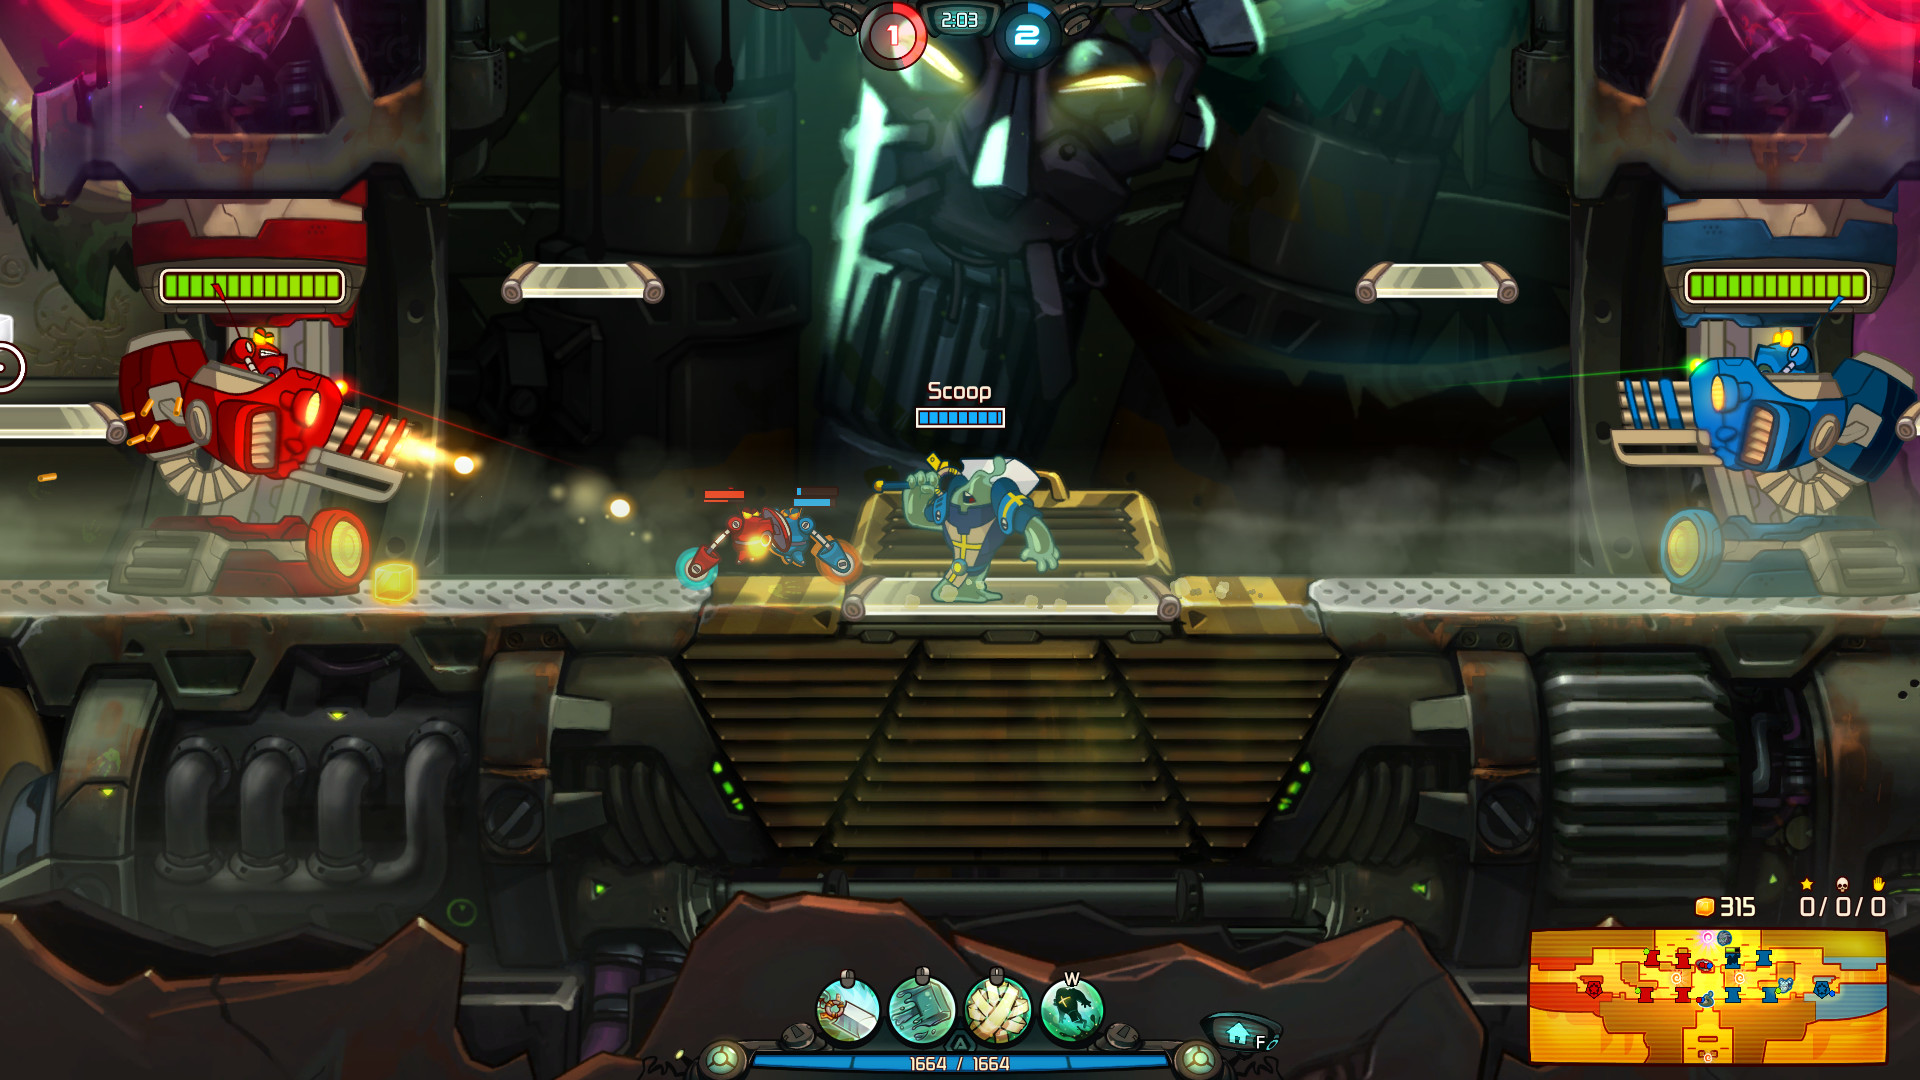 Scoop of Justice - Awesomenauts Character screenshot